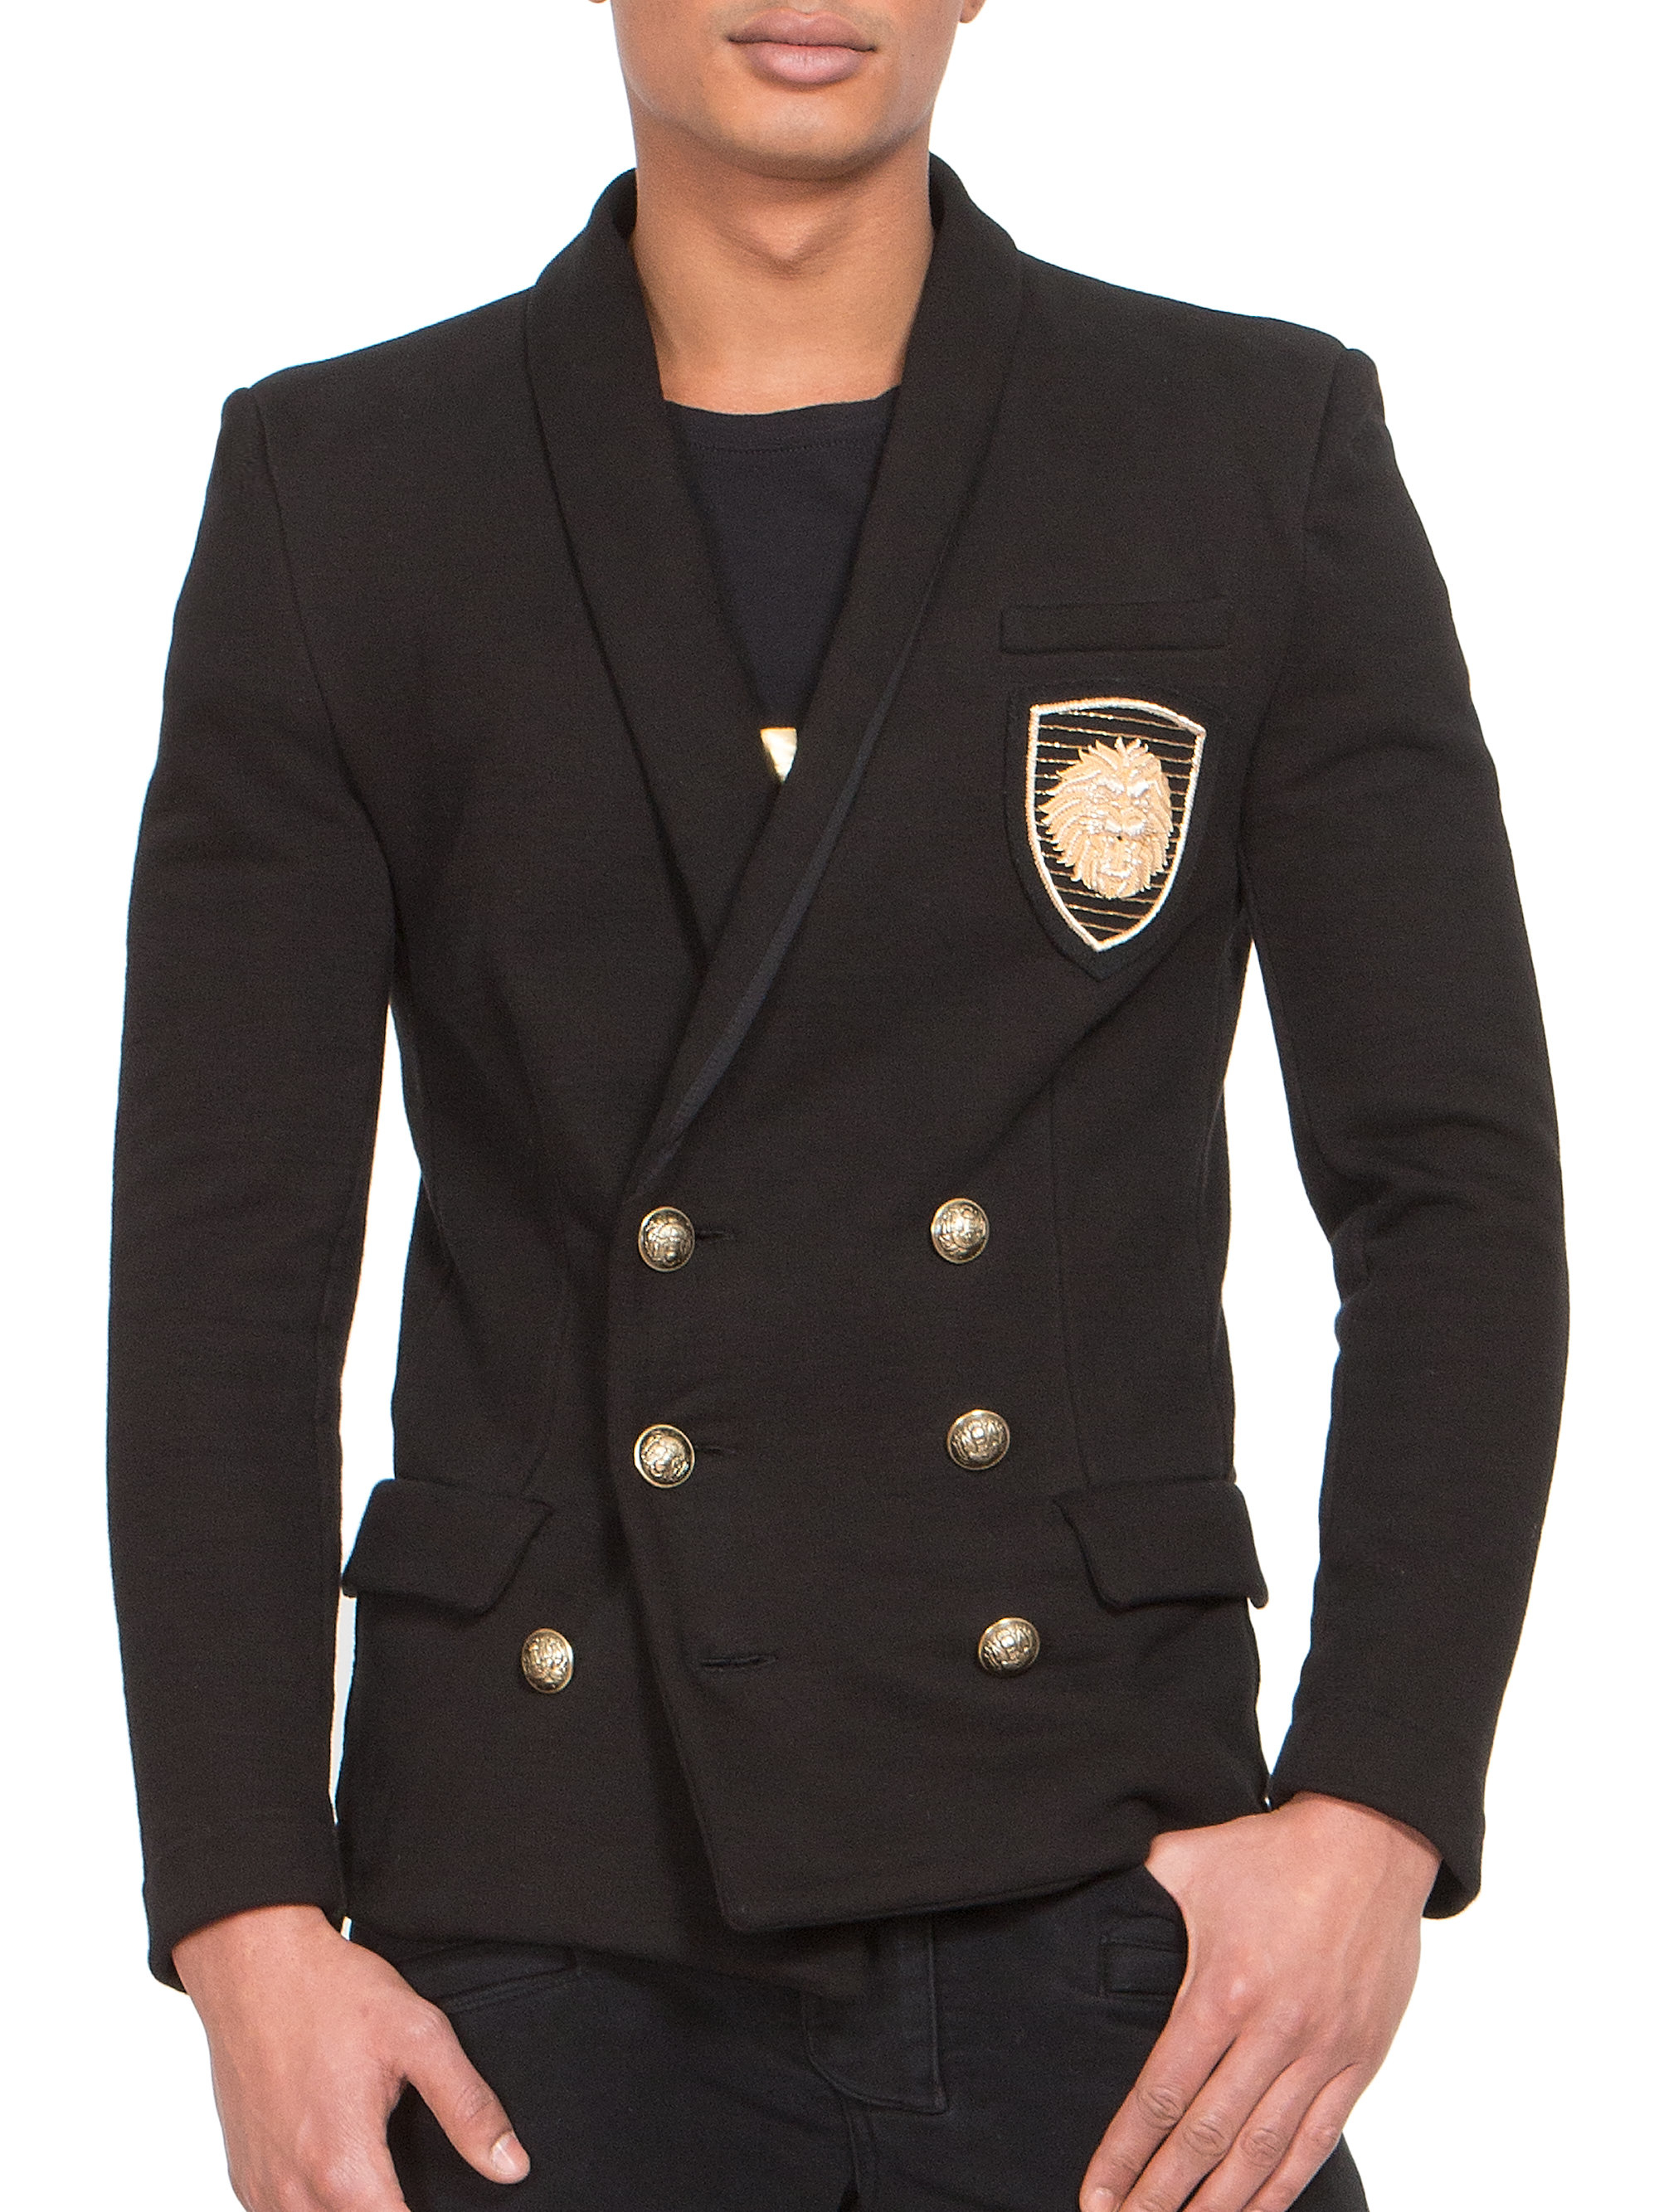 Shop eBay for great deals on Pierre Balmain Men's Blazers and Sport Coats. You'll find new or used Pierre Balmain Men's Blazers and Sport Coats on eBay. Free shipping on selected items.